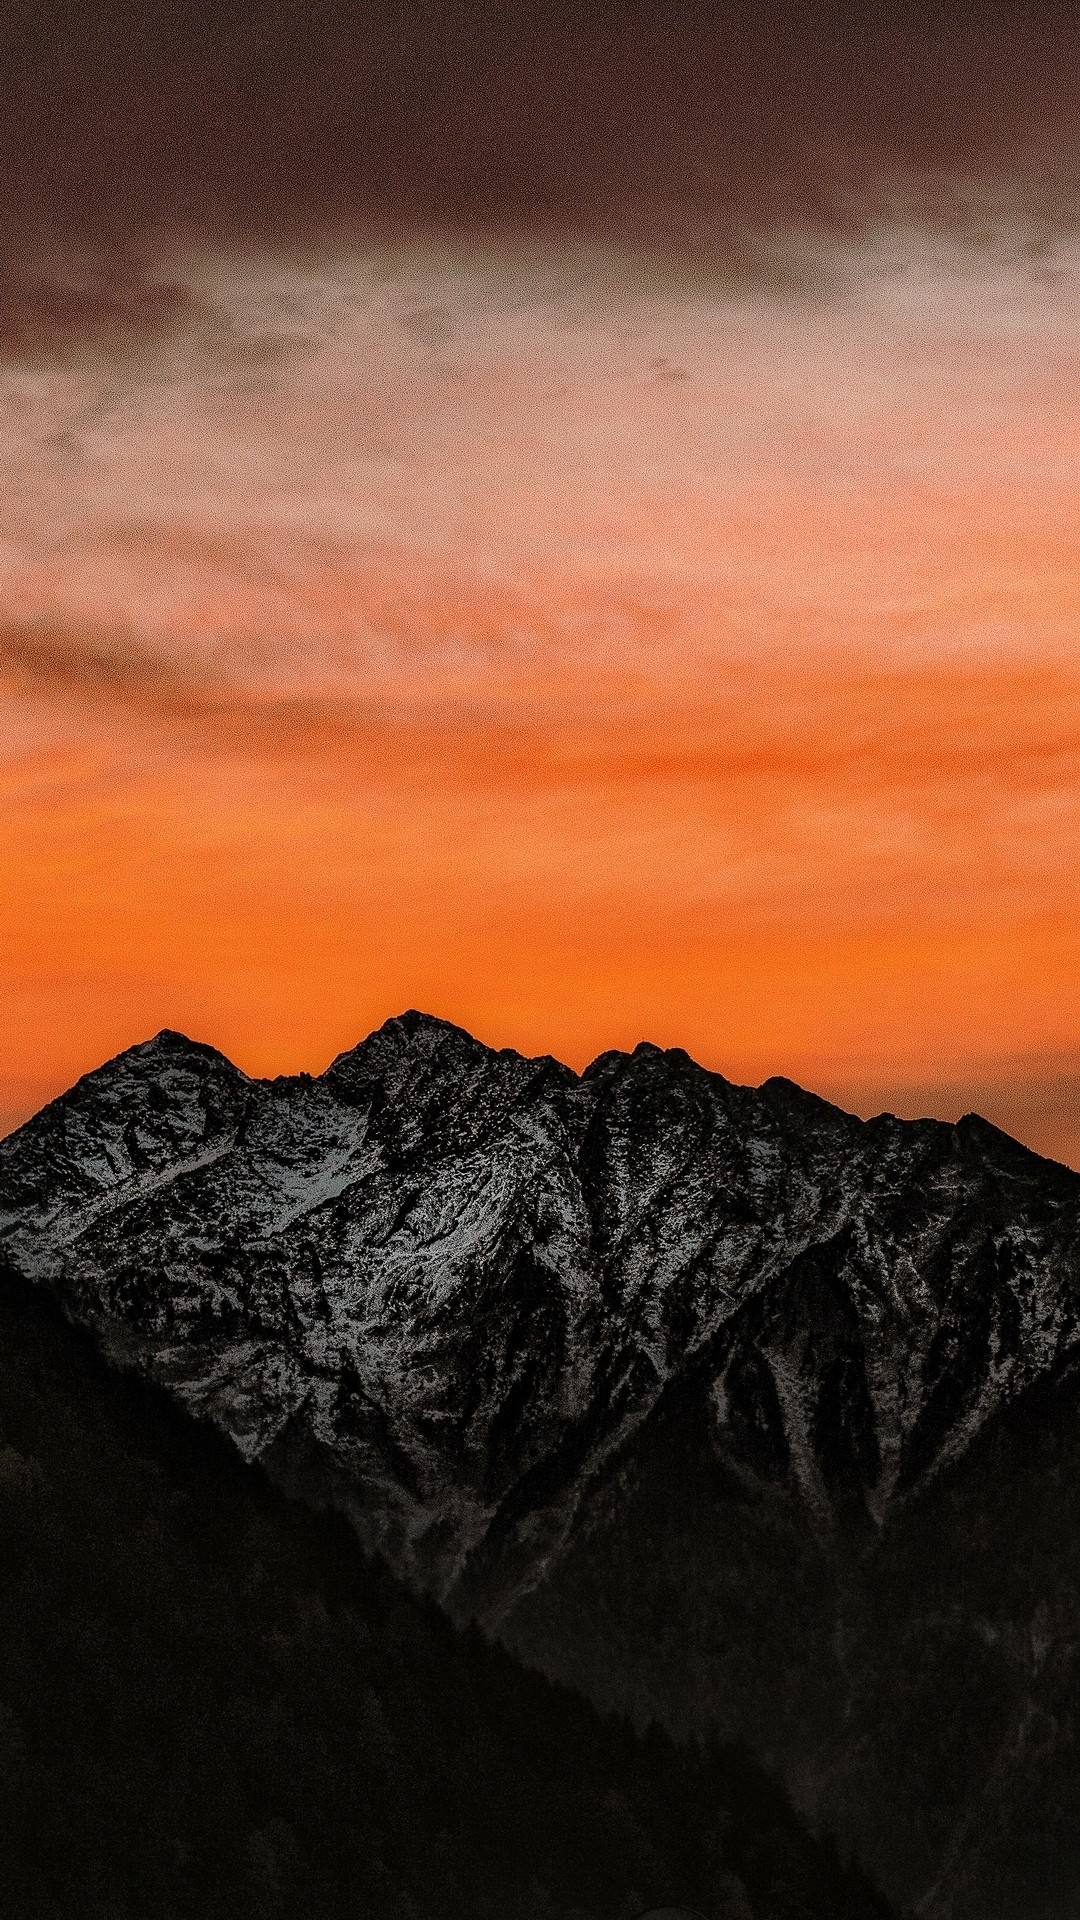 Mountain hd wallpaper for iphone